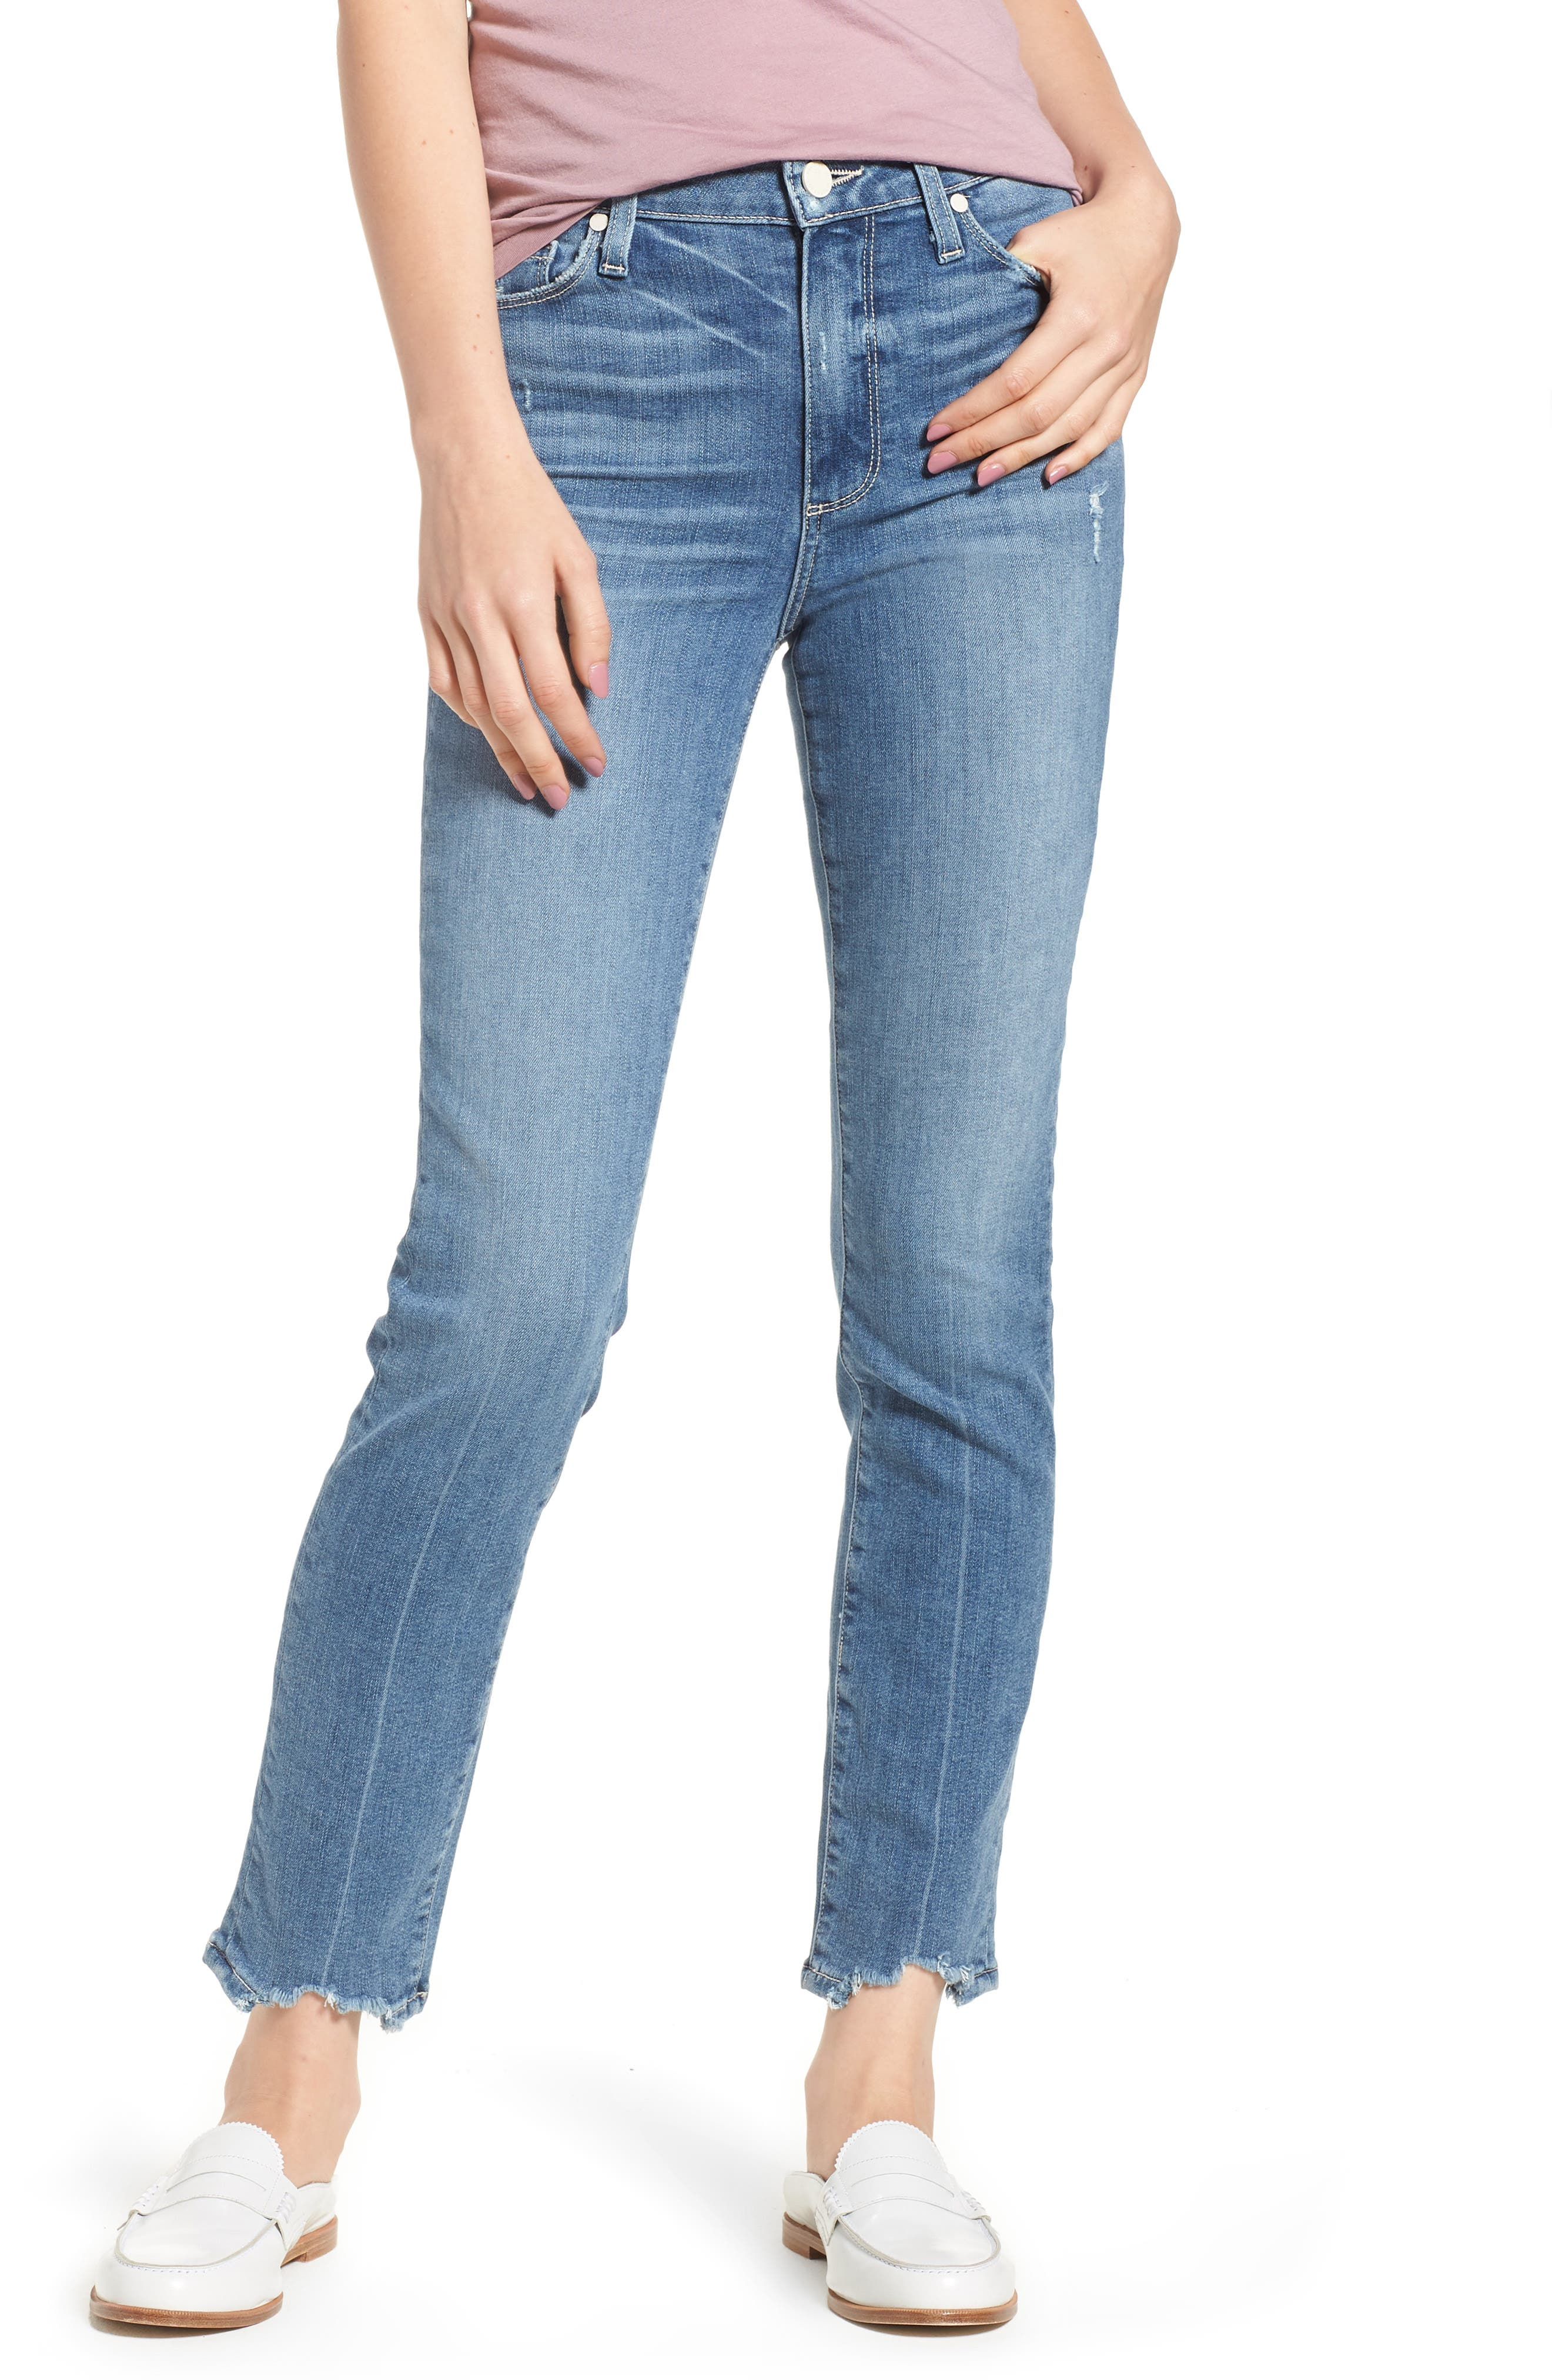 Transcend Vintage - Hoxton High Waist Ankle Skinny Jeans,                         Main,                         color, Zahara